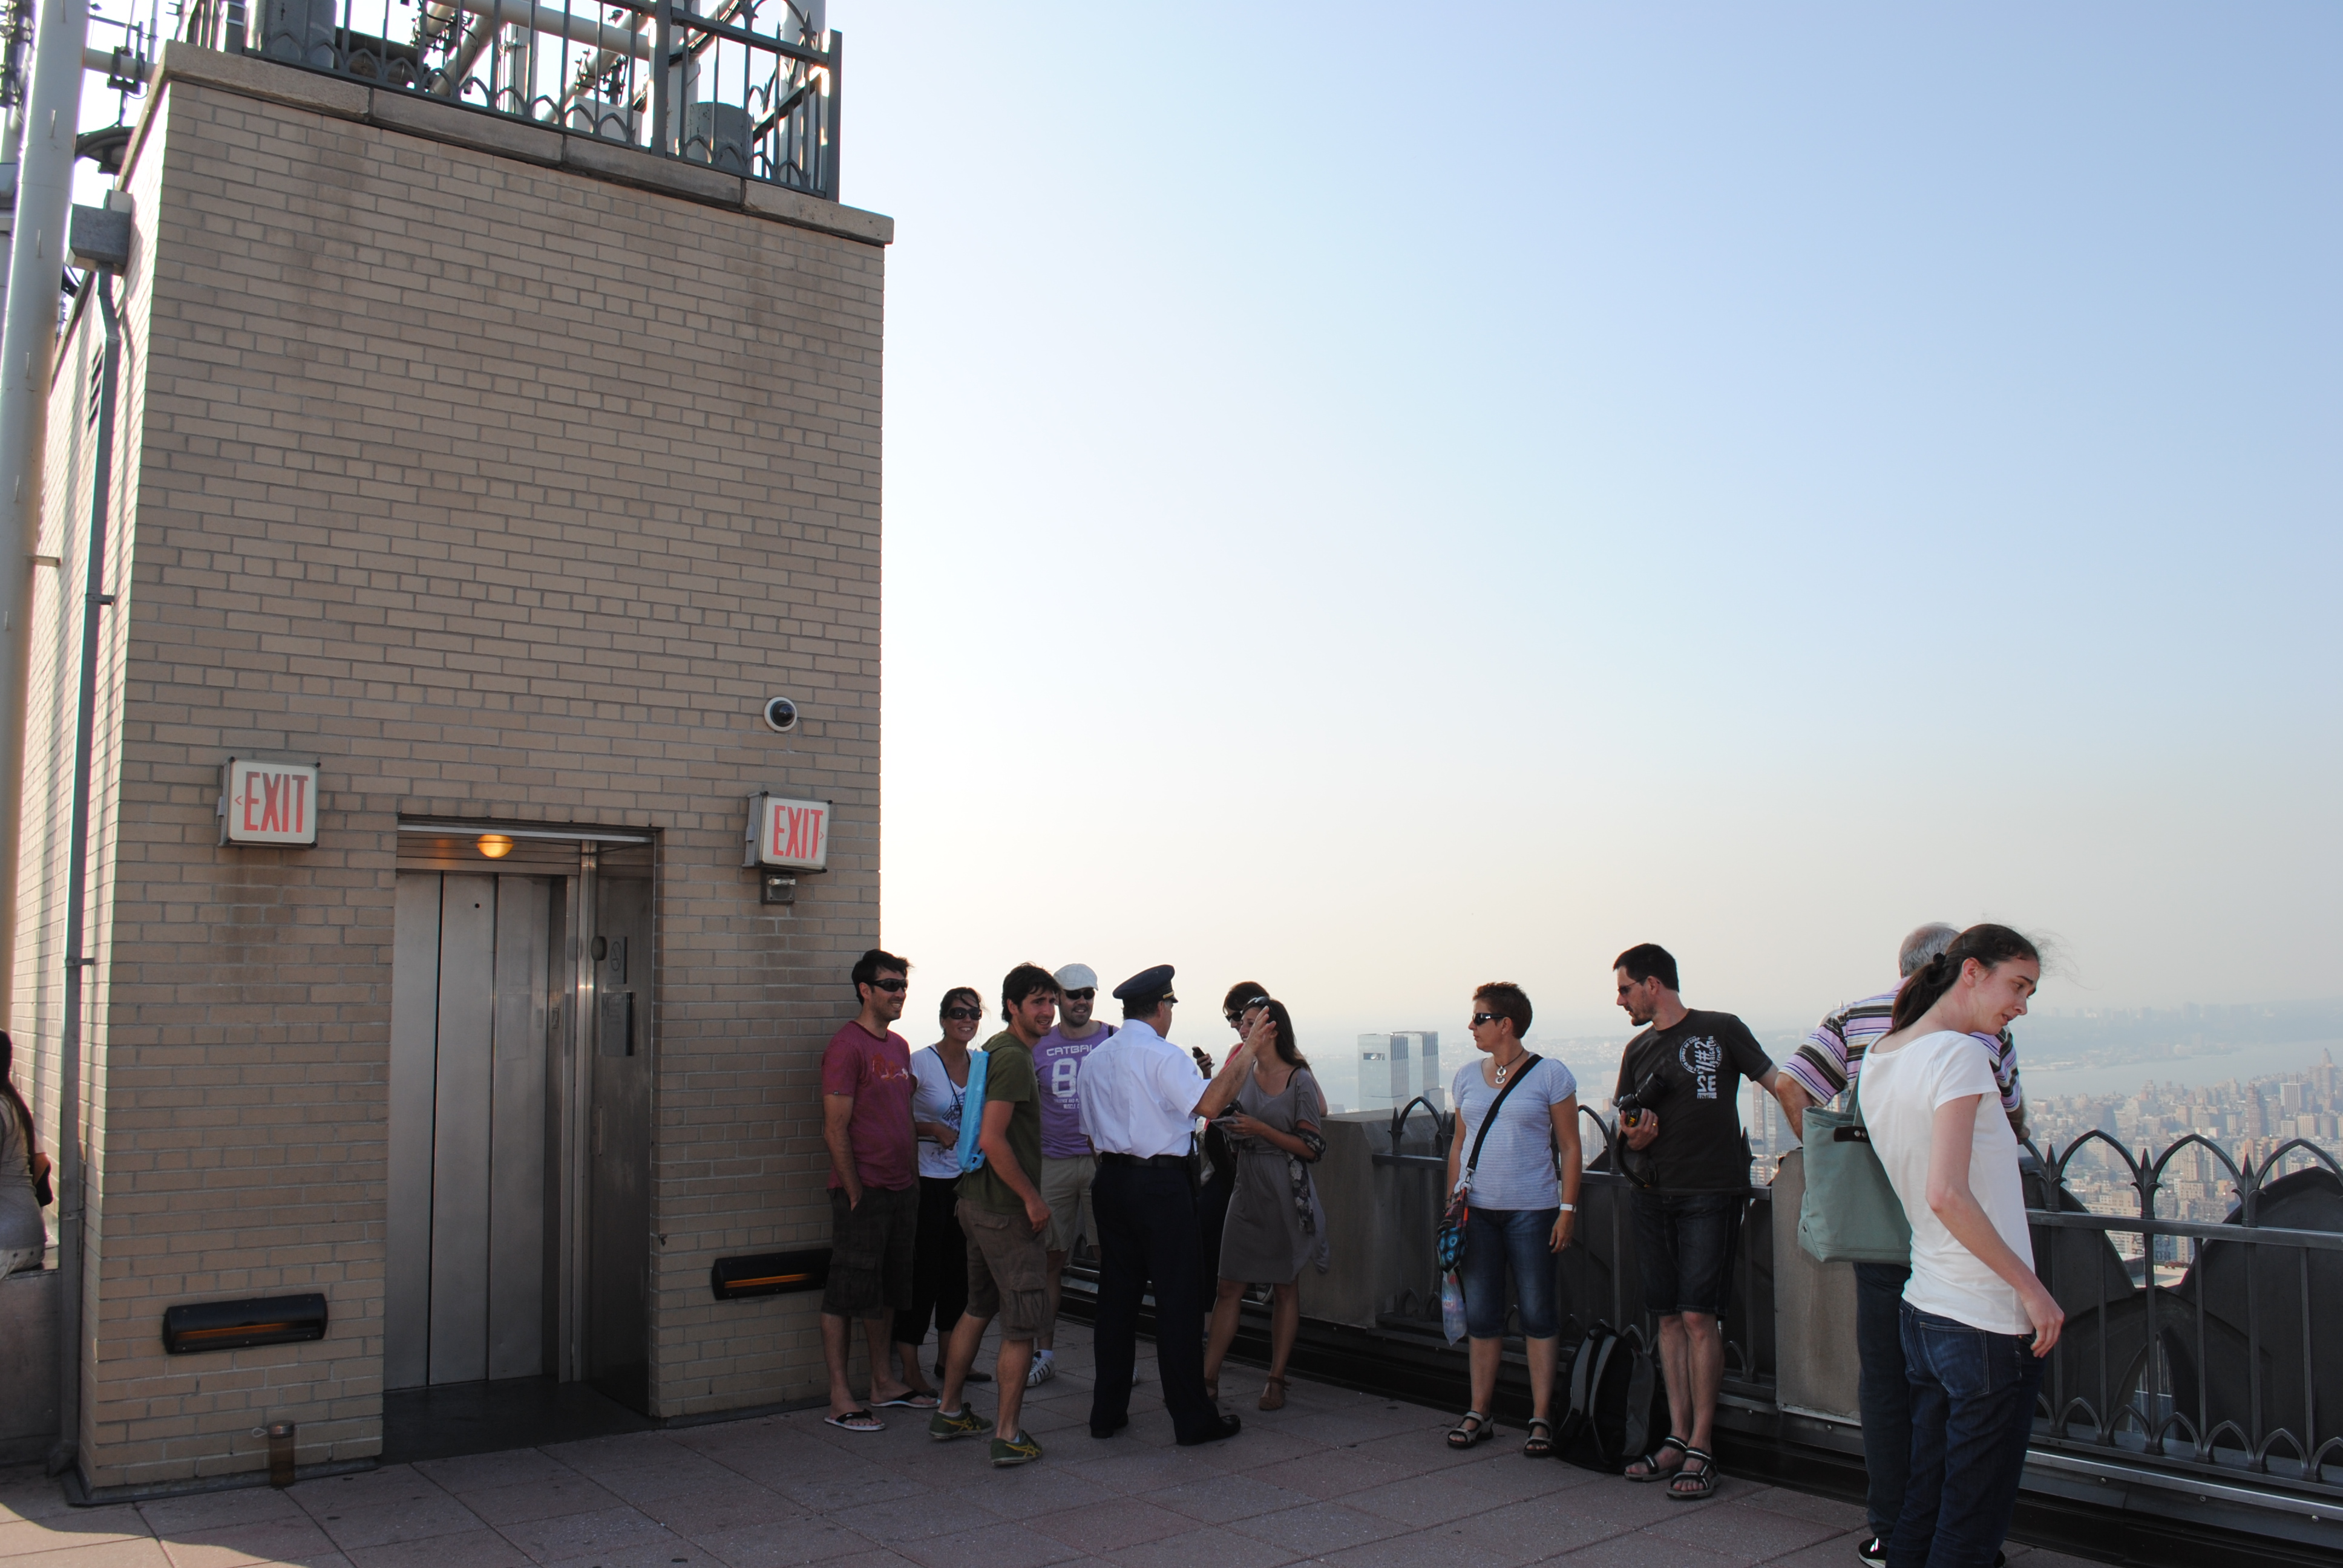 Security at The Top of The Rock